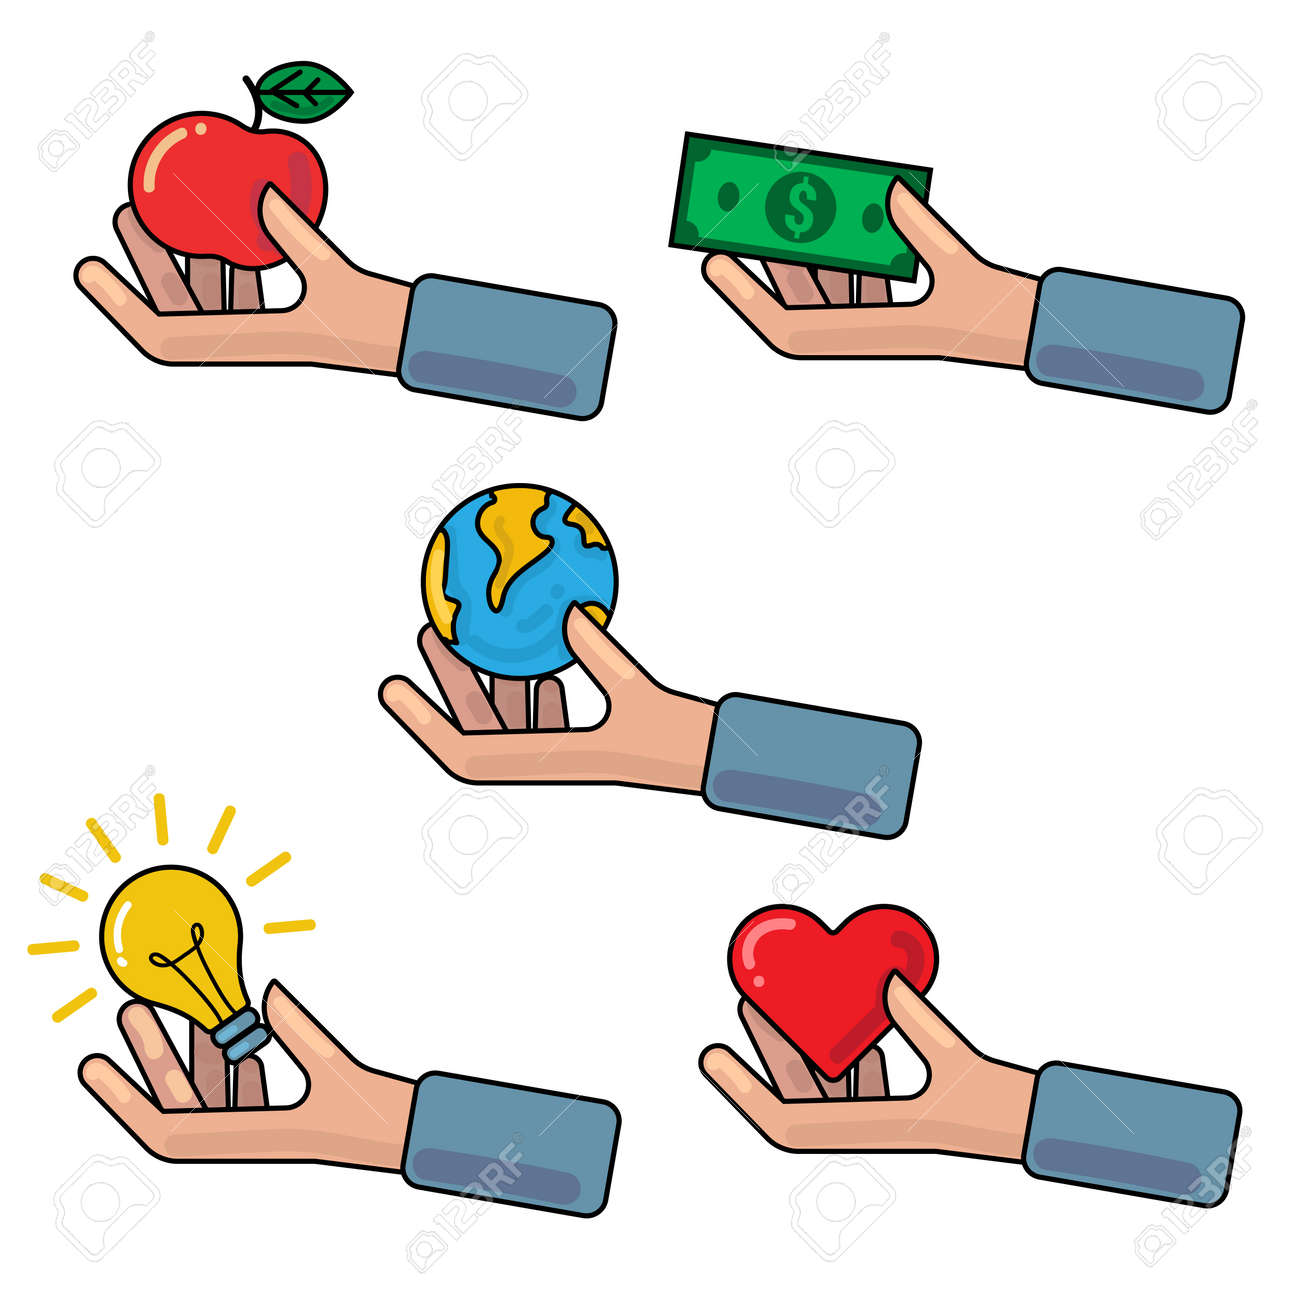 Vector outline illustration with hand holding or giving red apple, Earth globe, money banknote, light bulb, red heart symbol. Concept of investment, donation, crowdfunding, charity, contribution, support, philanthropy - 67176882